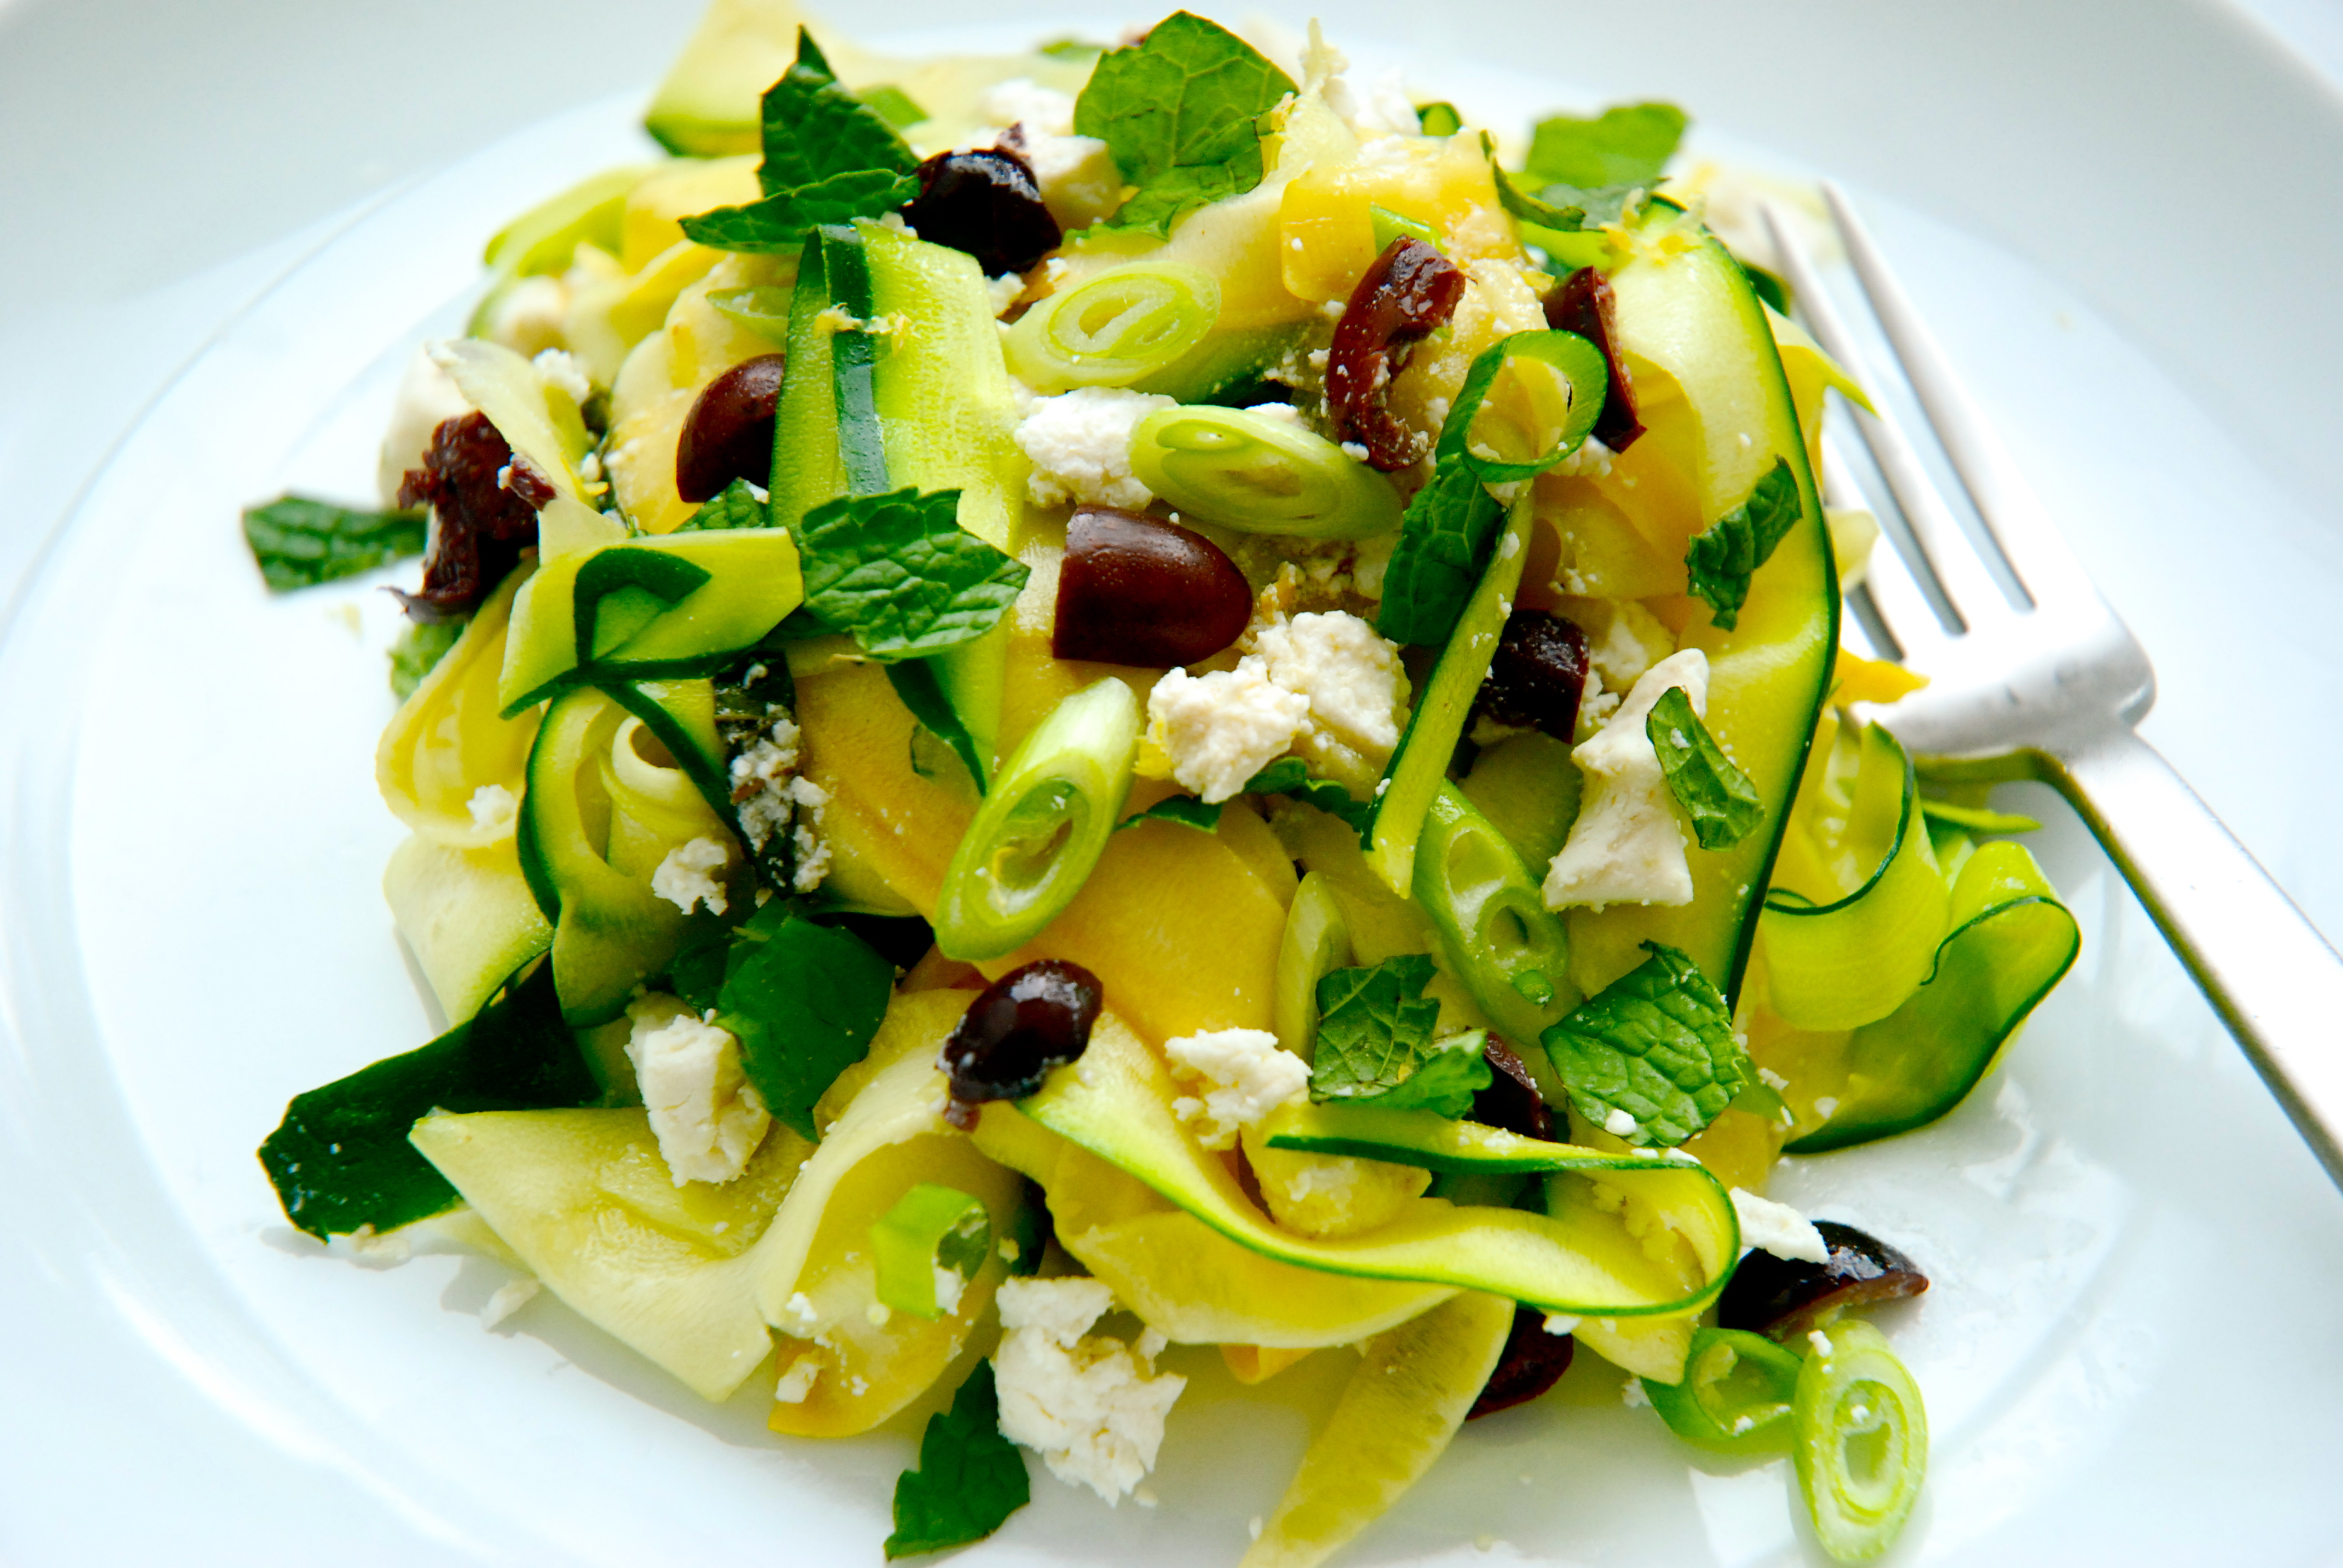 Zucchini Ribbons with Olives, Mint and Ricotta Salata